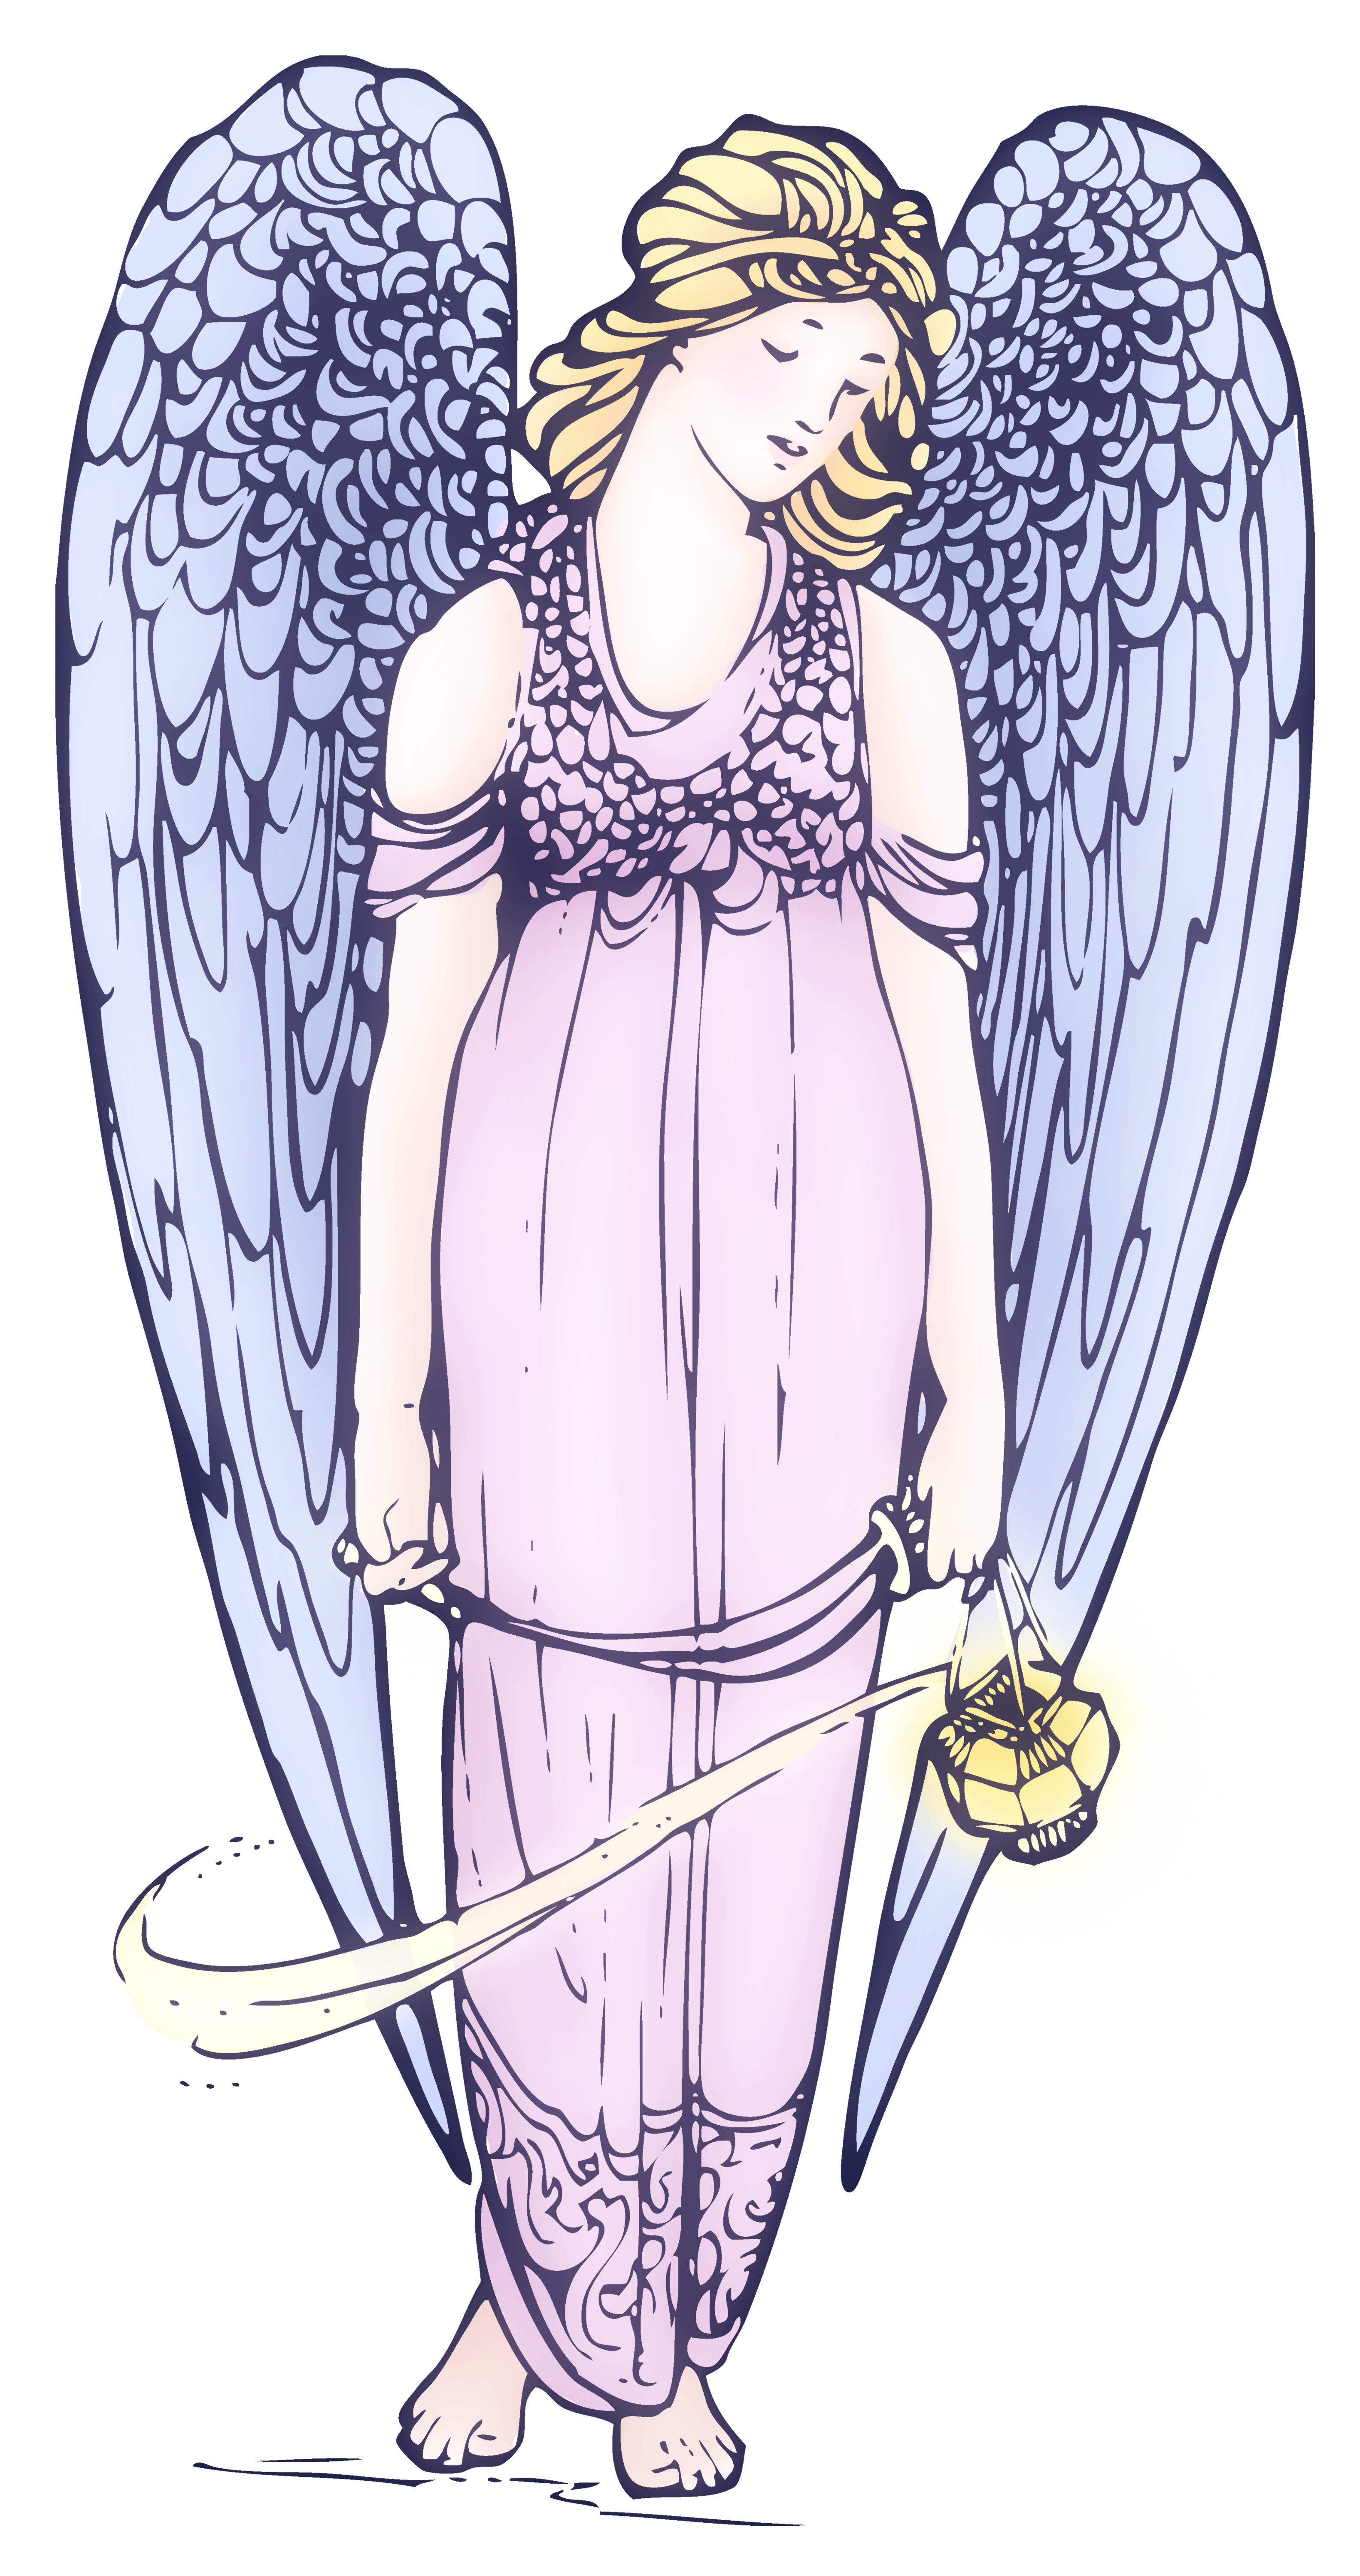 Wing clipart public domain. Lovely angel free clip